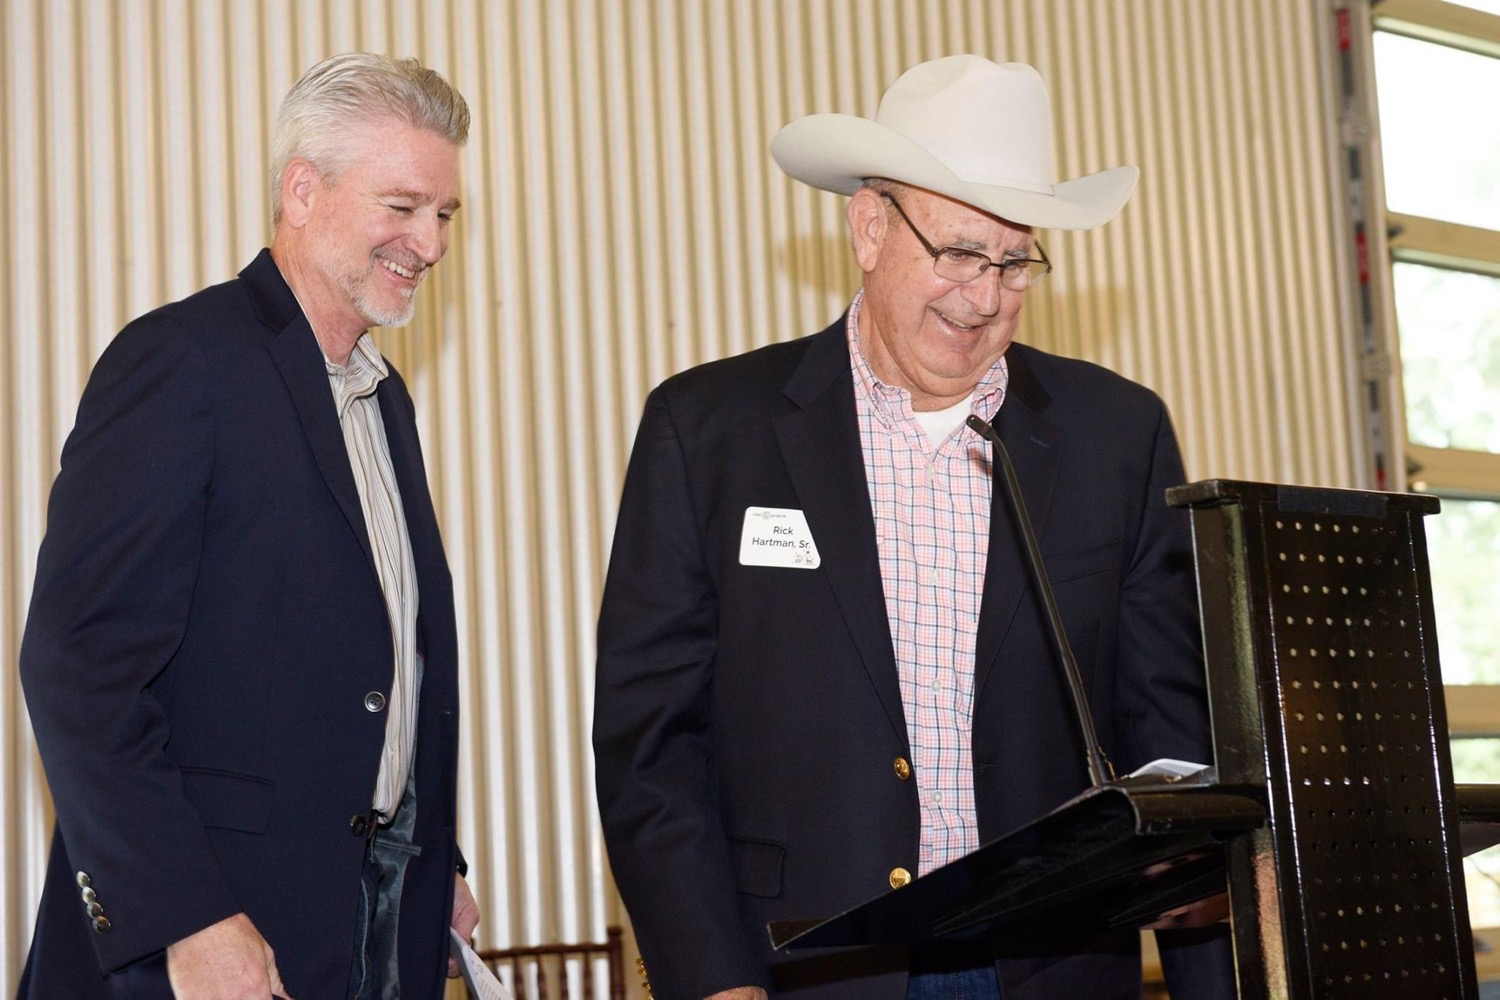 One Martin Board of Directors and sponsors Mitch Hutchcraft of King Ranch and Rick Hartman of Hartma